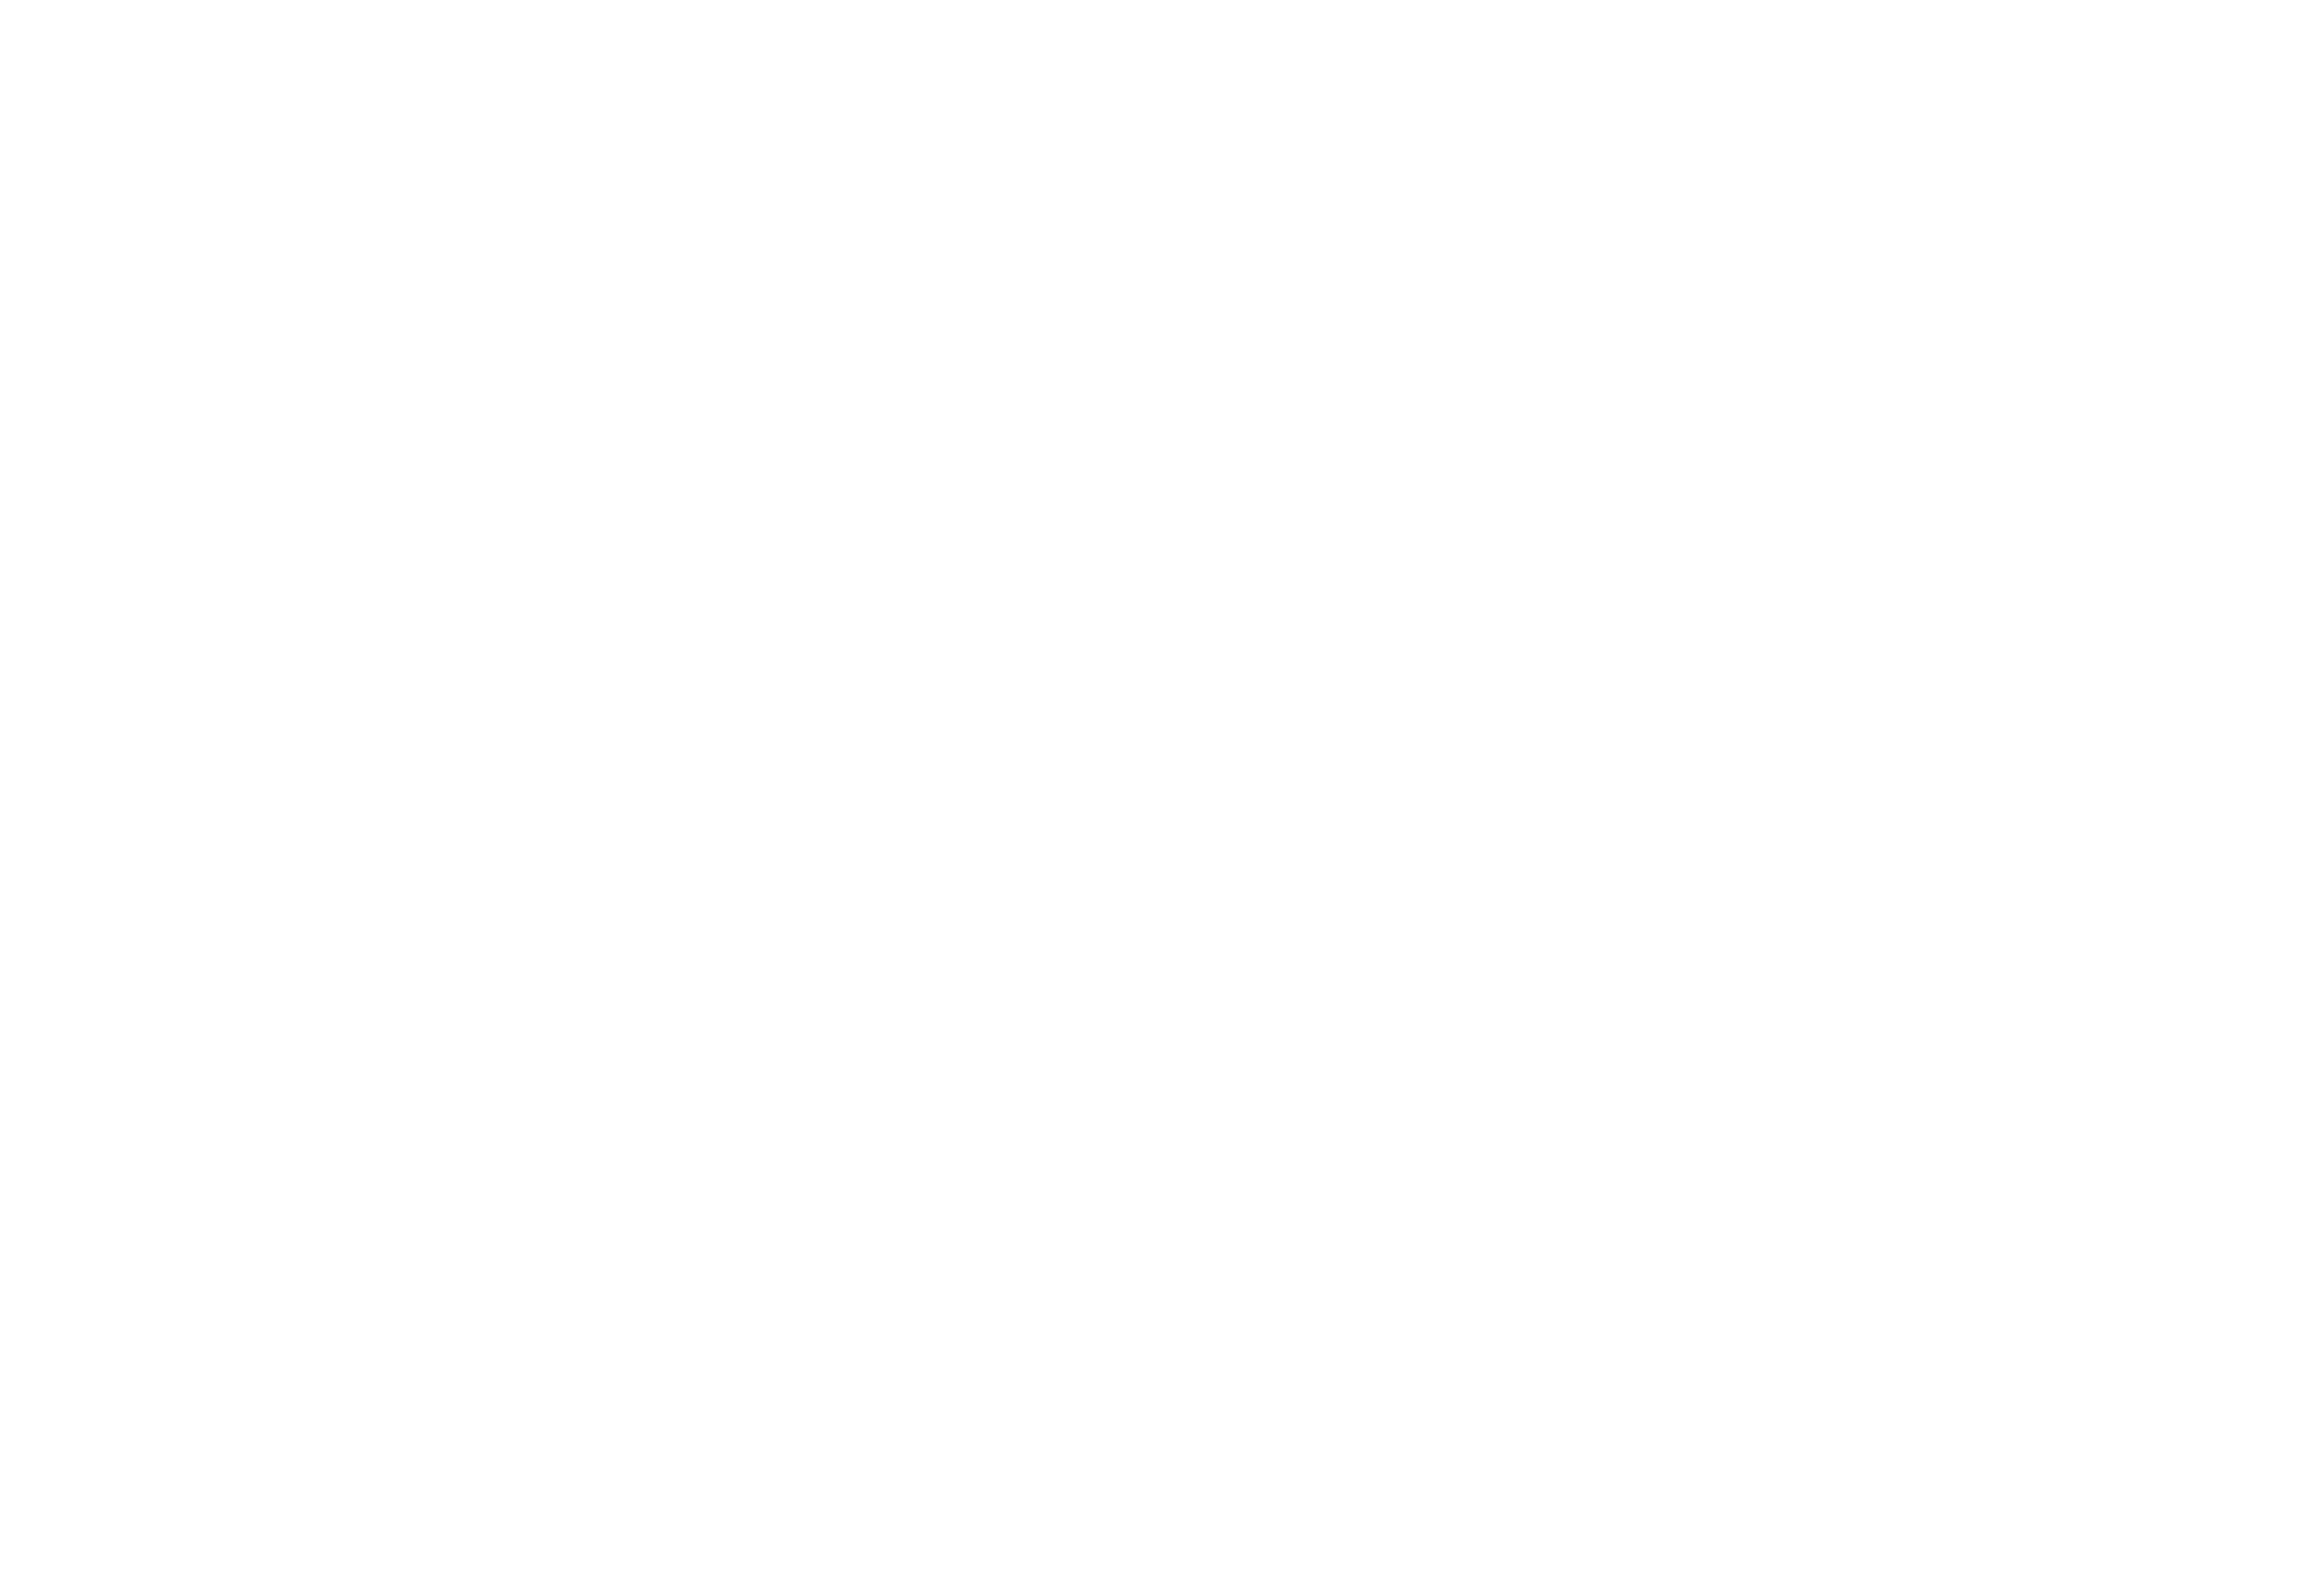 Metro City Kitchen